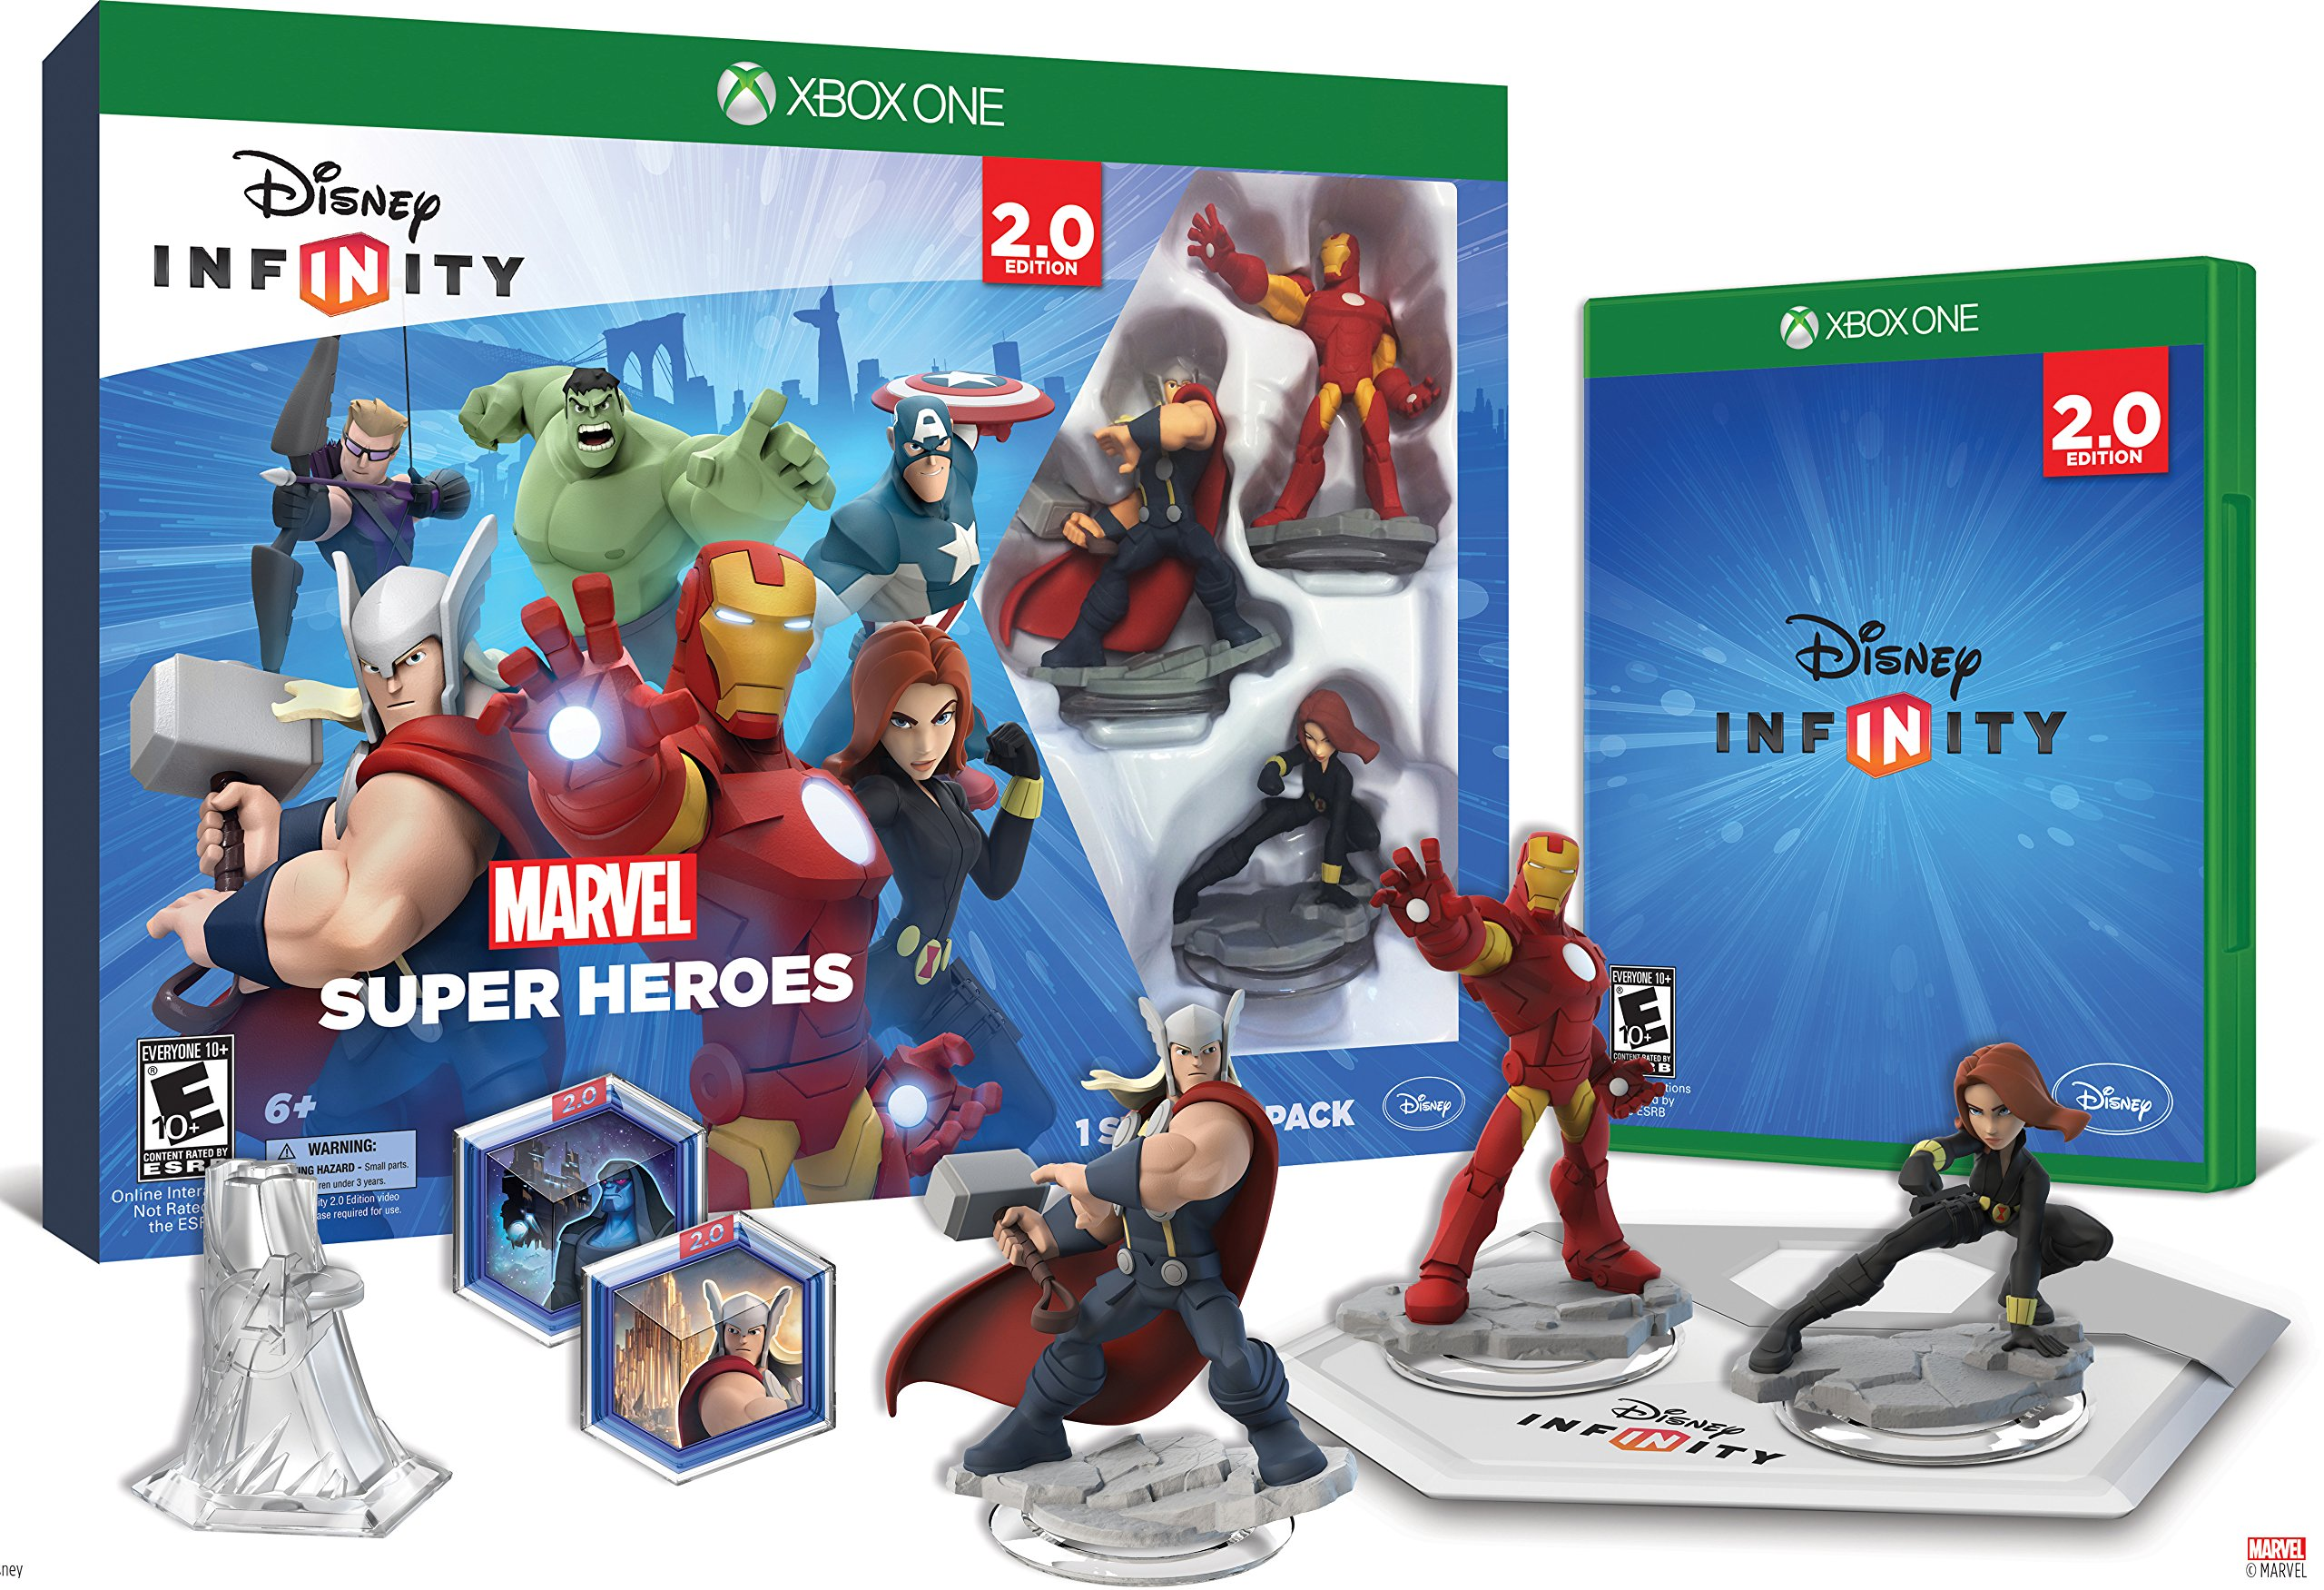 Disney INFINITY: Marvel Super Heroes (2.0 Edition) Video Game Starter Pack - Xbox One